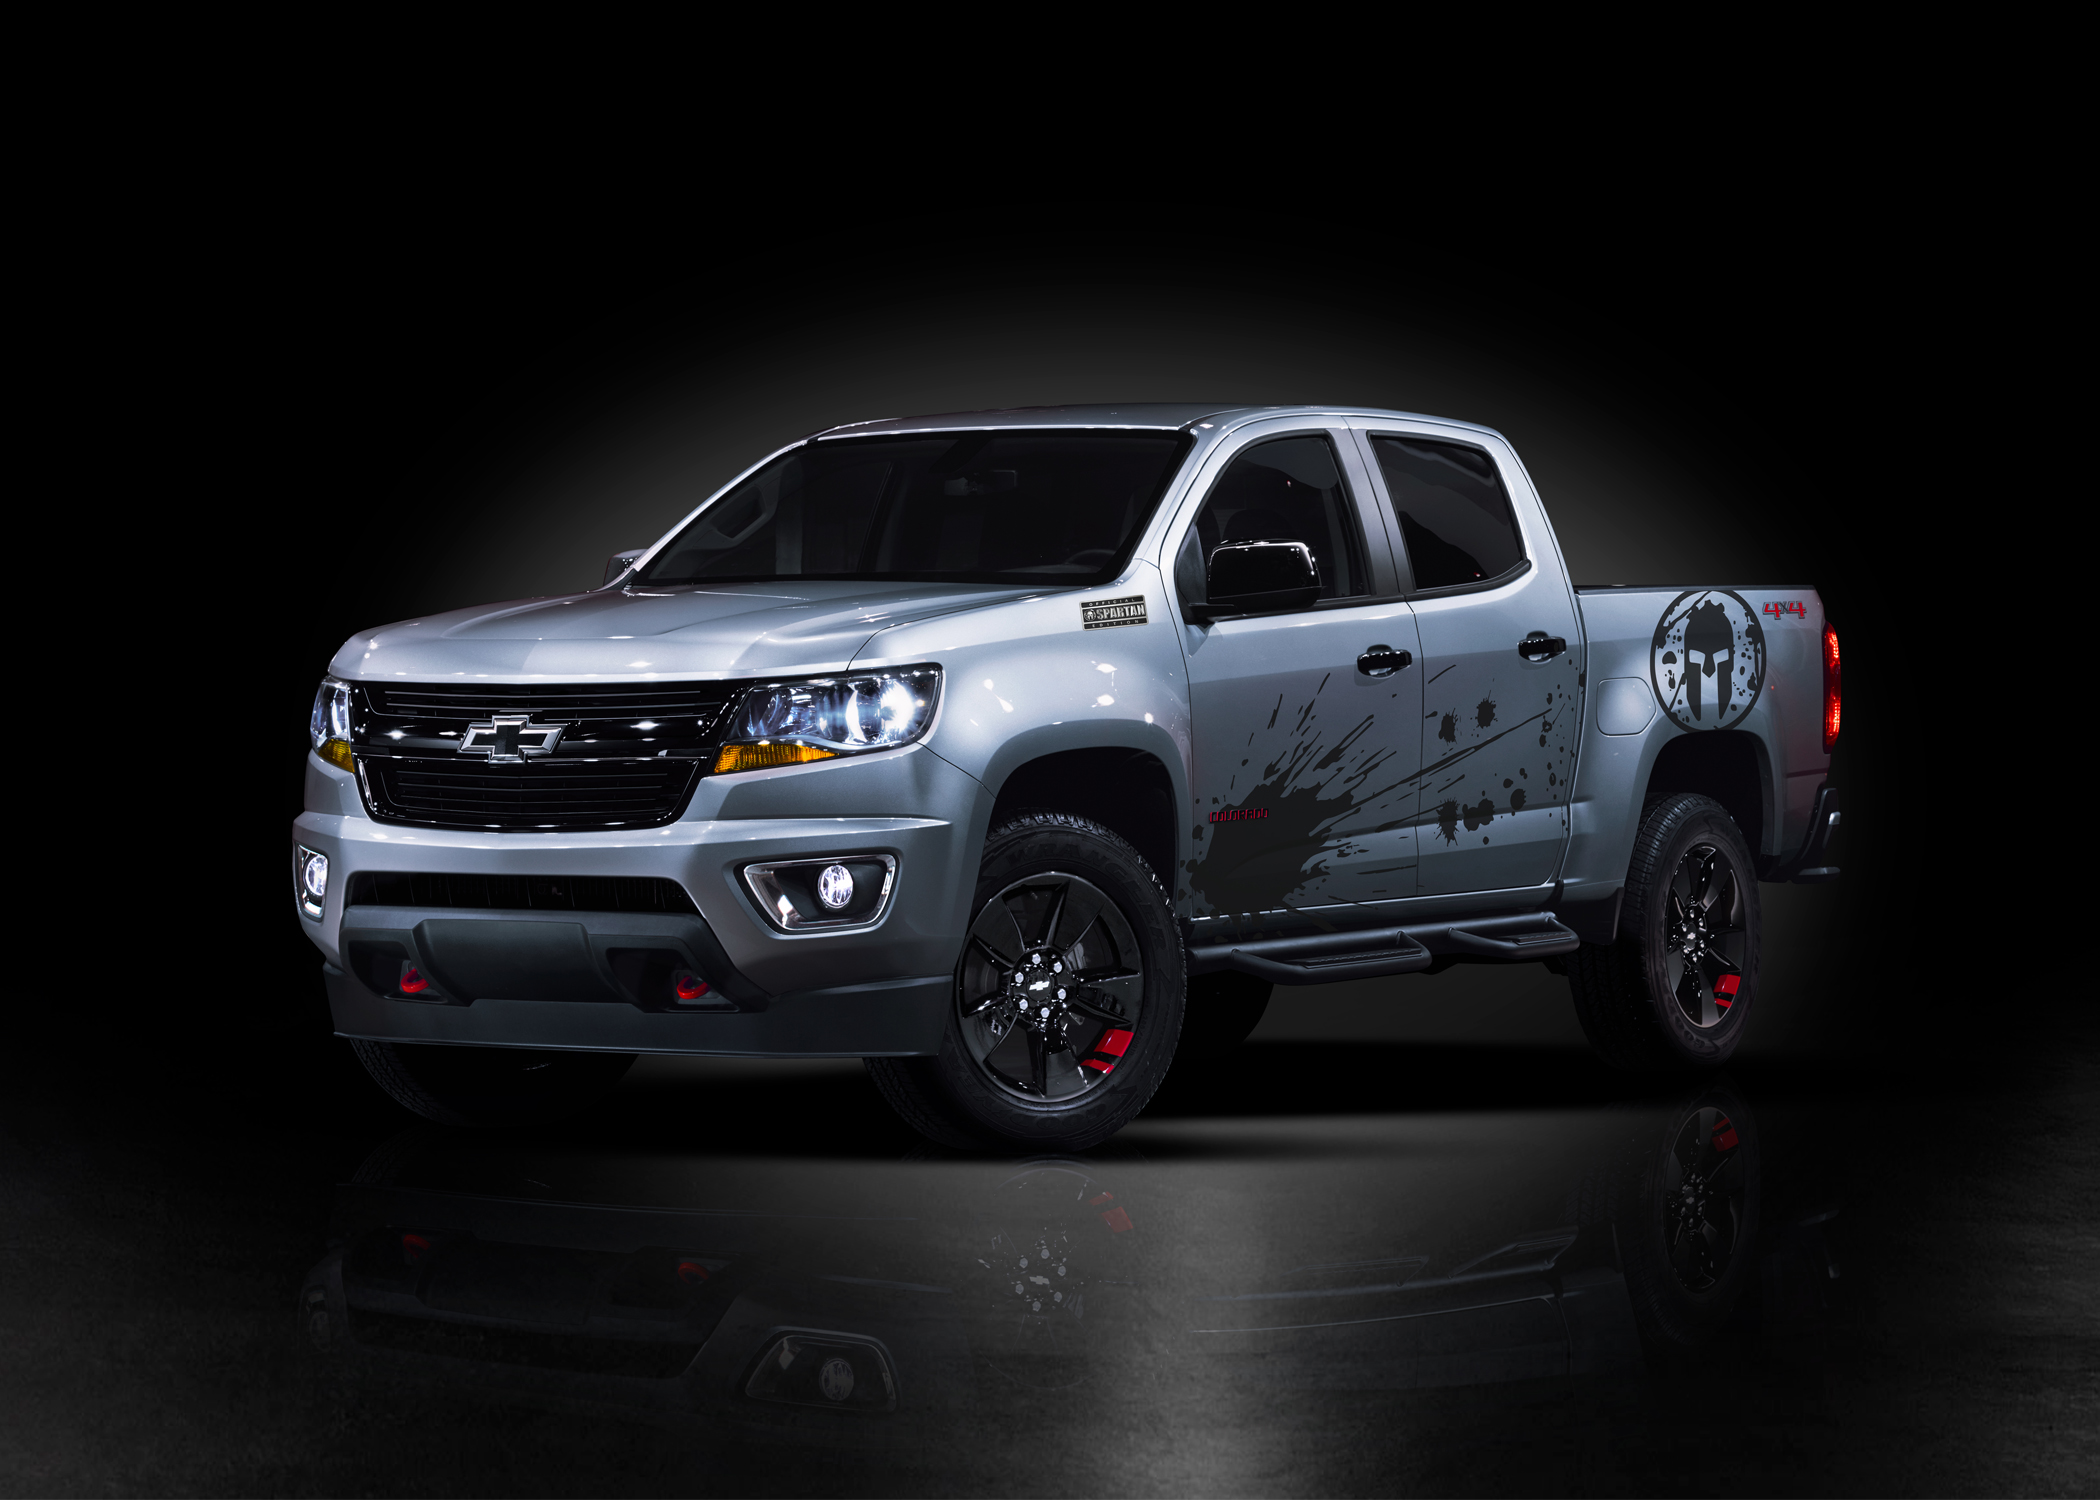 North Country Chevy Dealers to Offer Special Spartan Edition Silverado and Colorado To Benefit ...